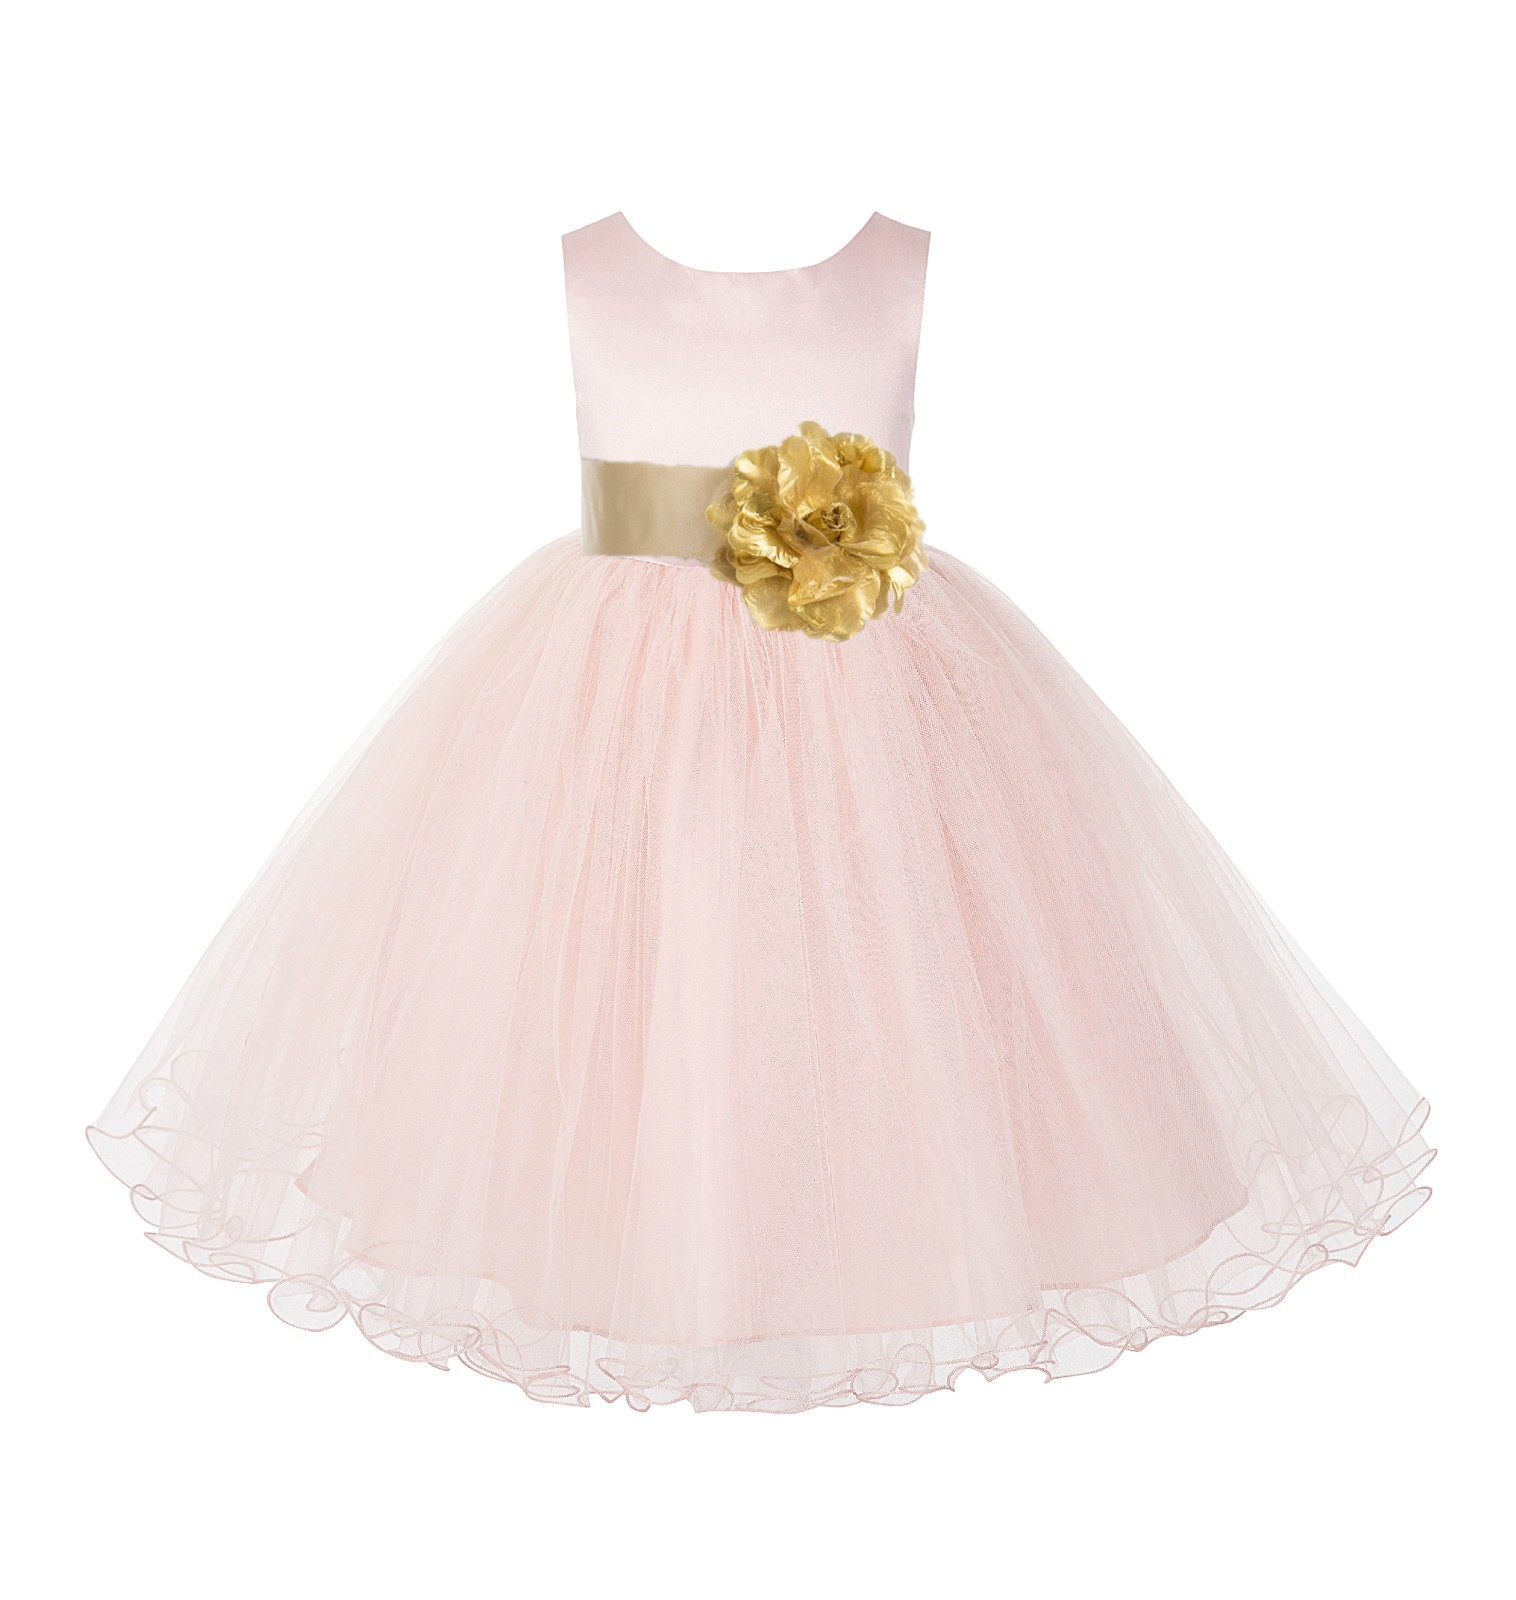 Blush Pink / Gold Tulle Rattail Edge Flower Girl Dress Pageant Recital 829S